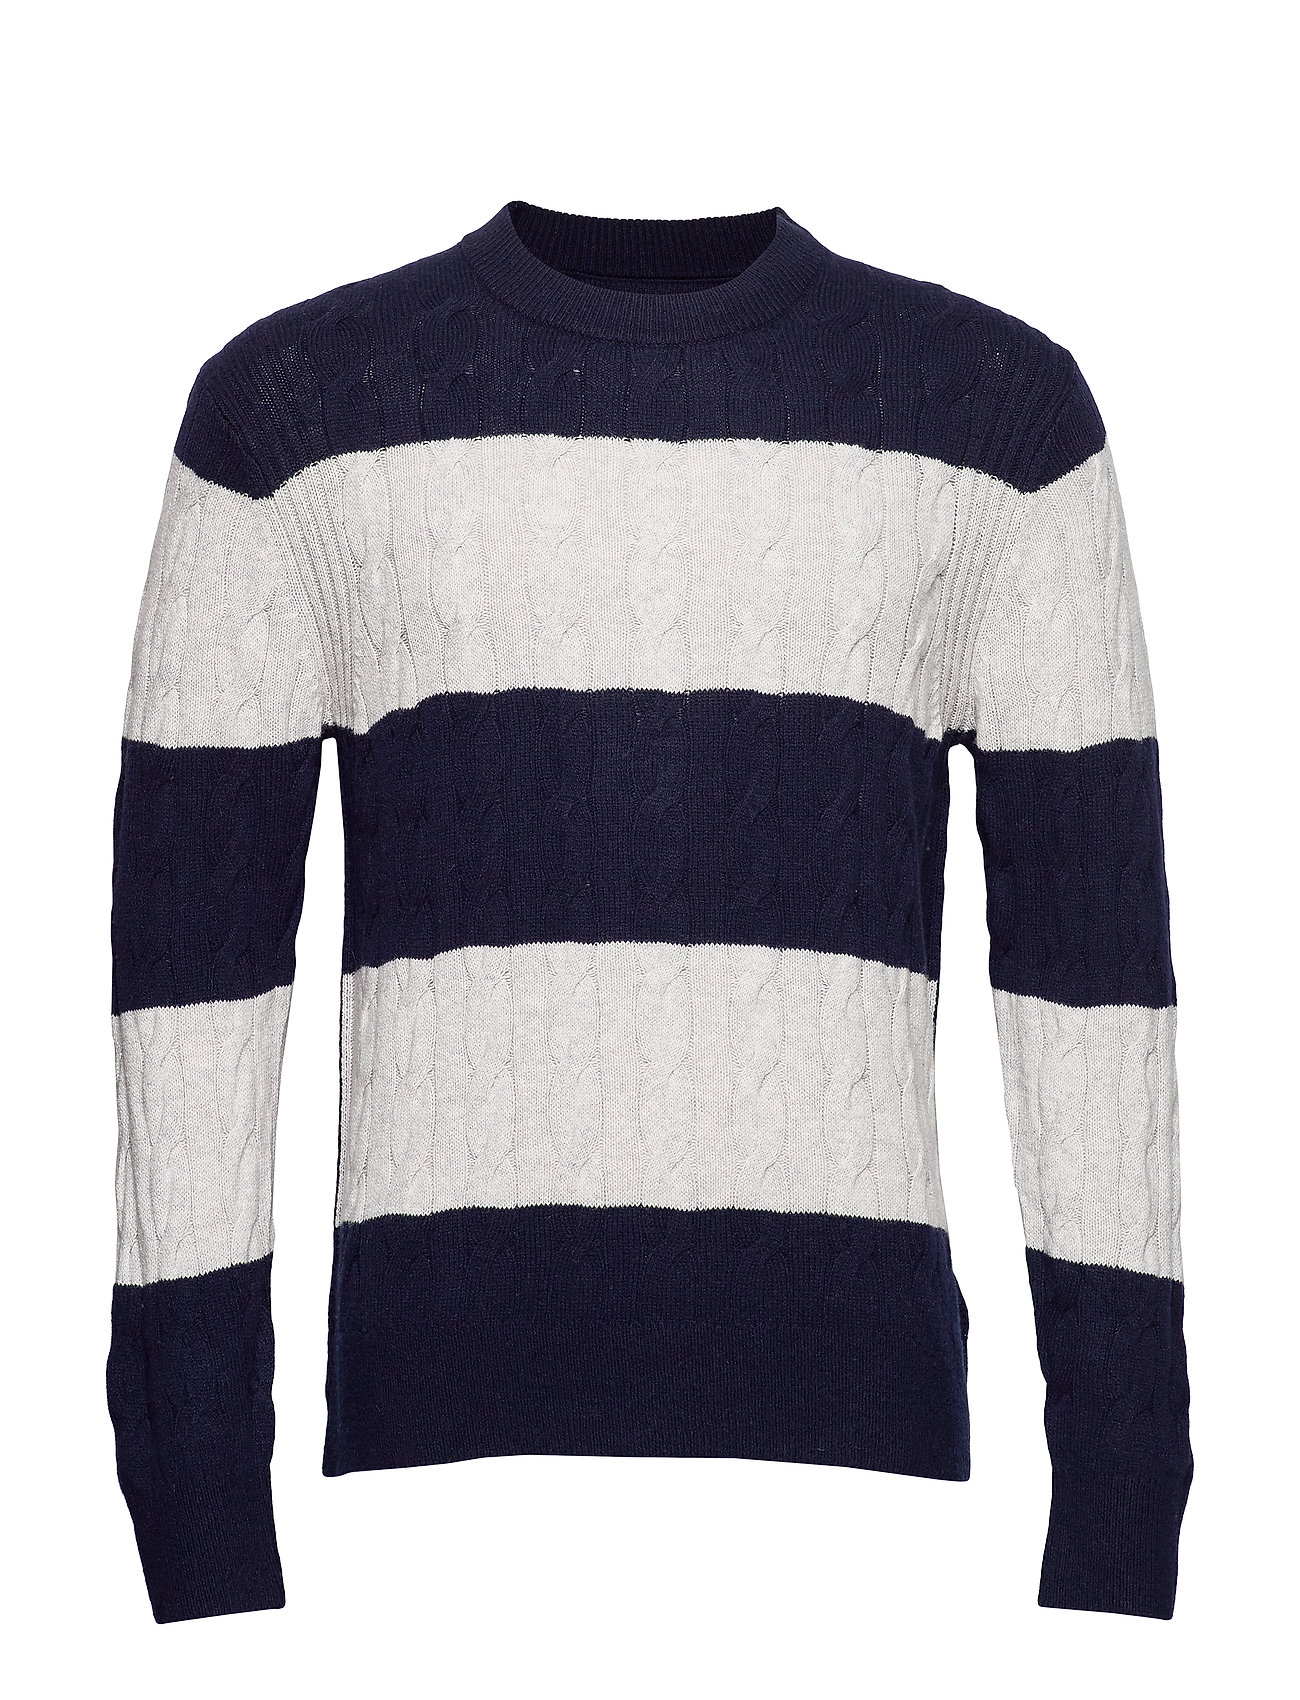 Tommy Hilfiger BLOCK STRIPED CABLE SWEATER - SKY CAPTAIN